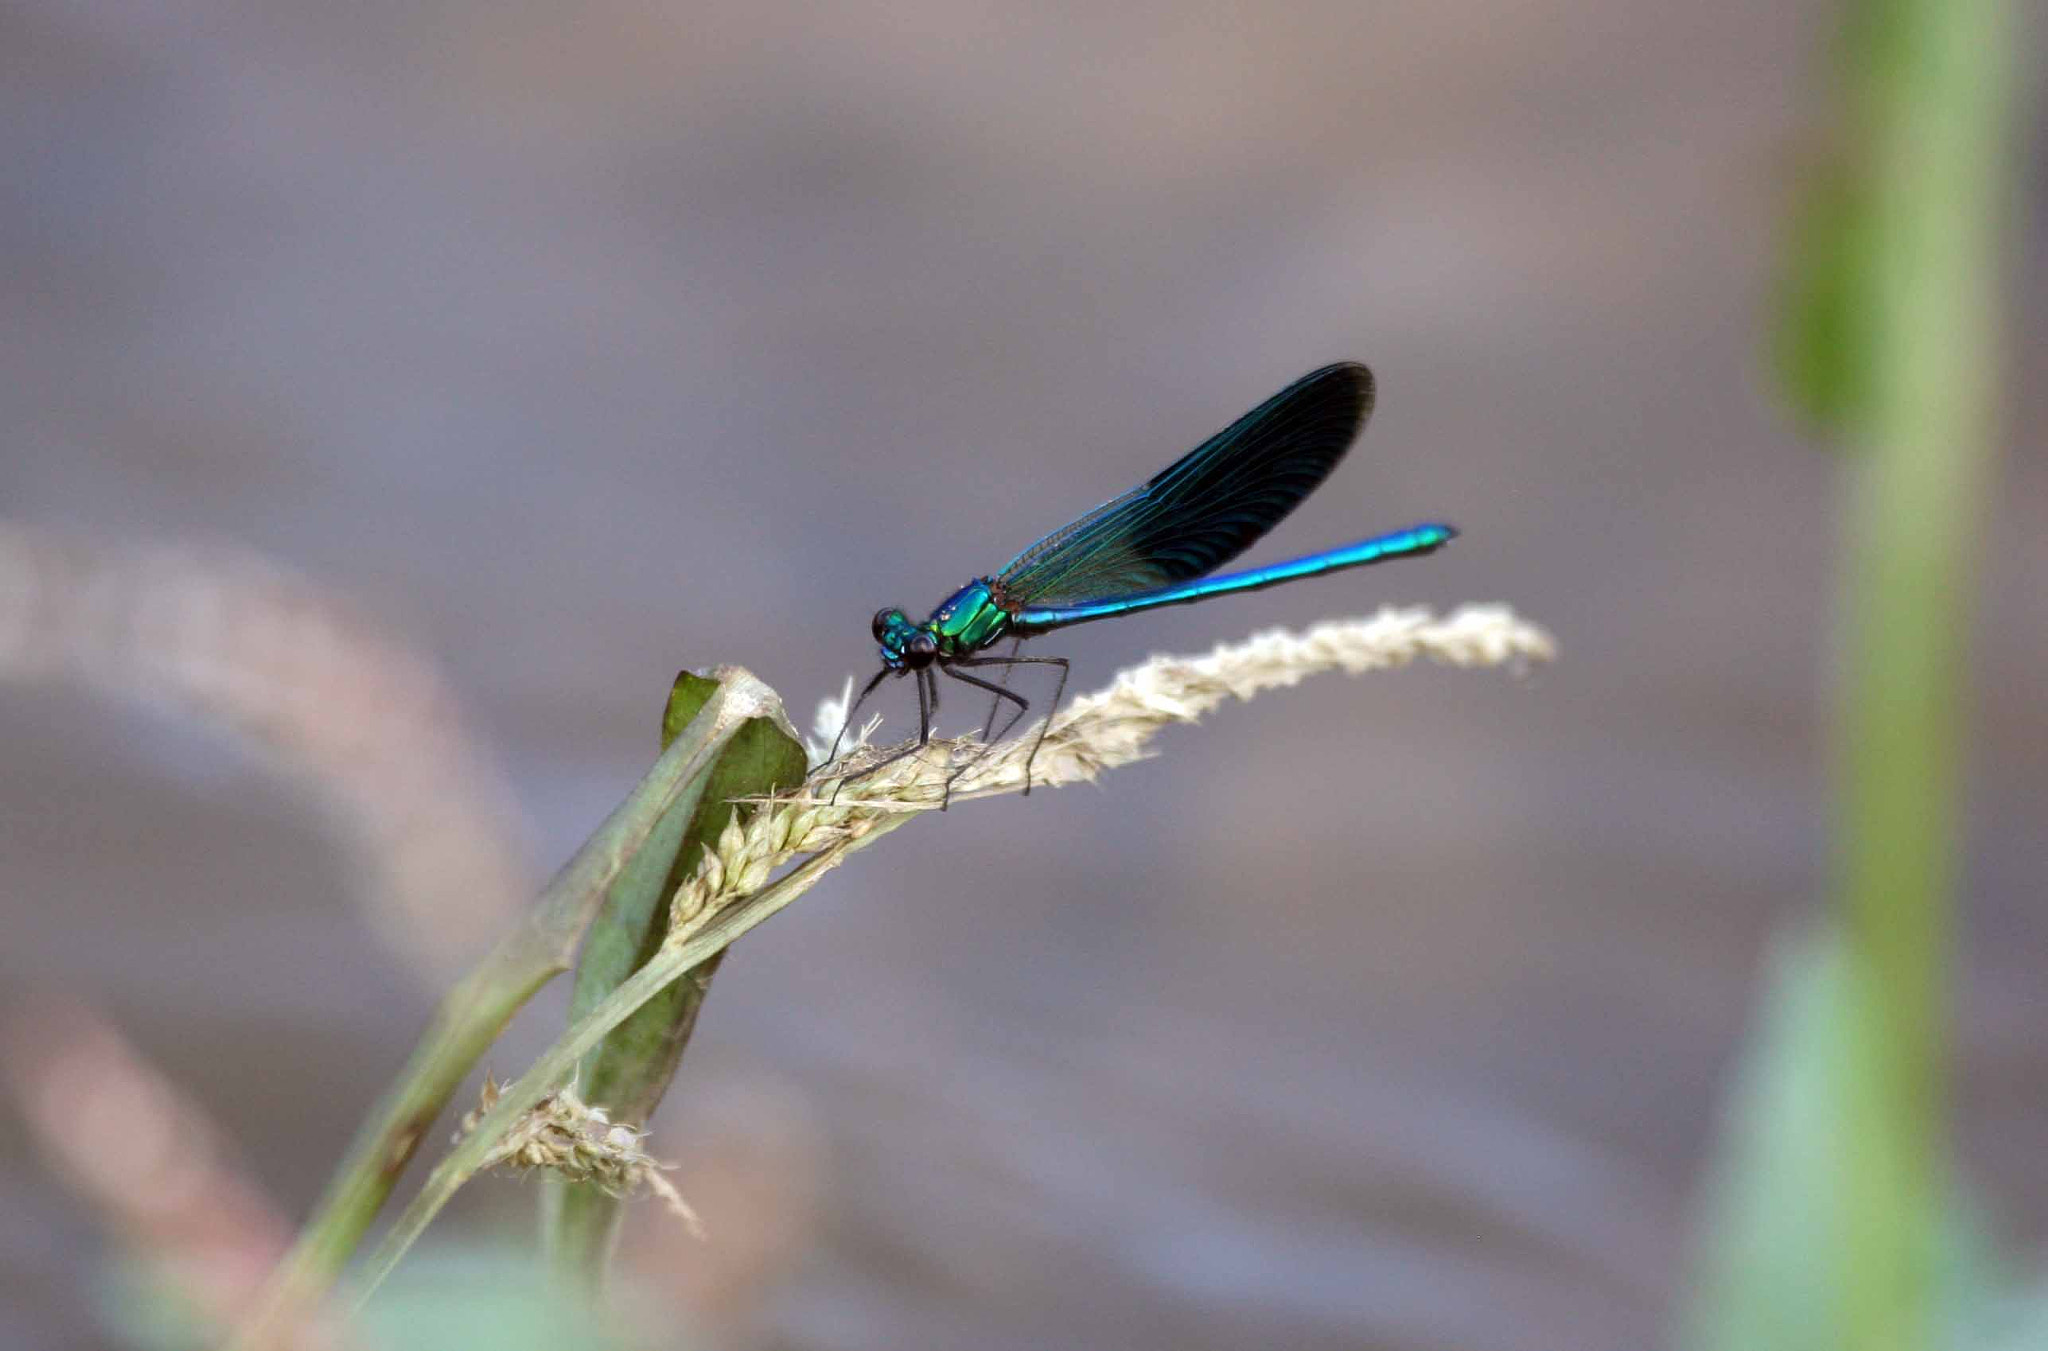 Photograph Dragonfly by Luciano Sollazzi on 500px